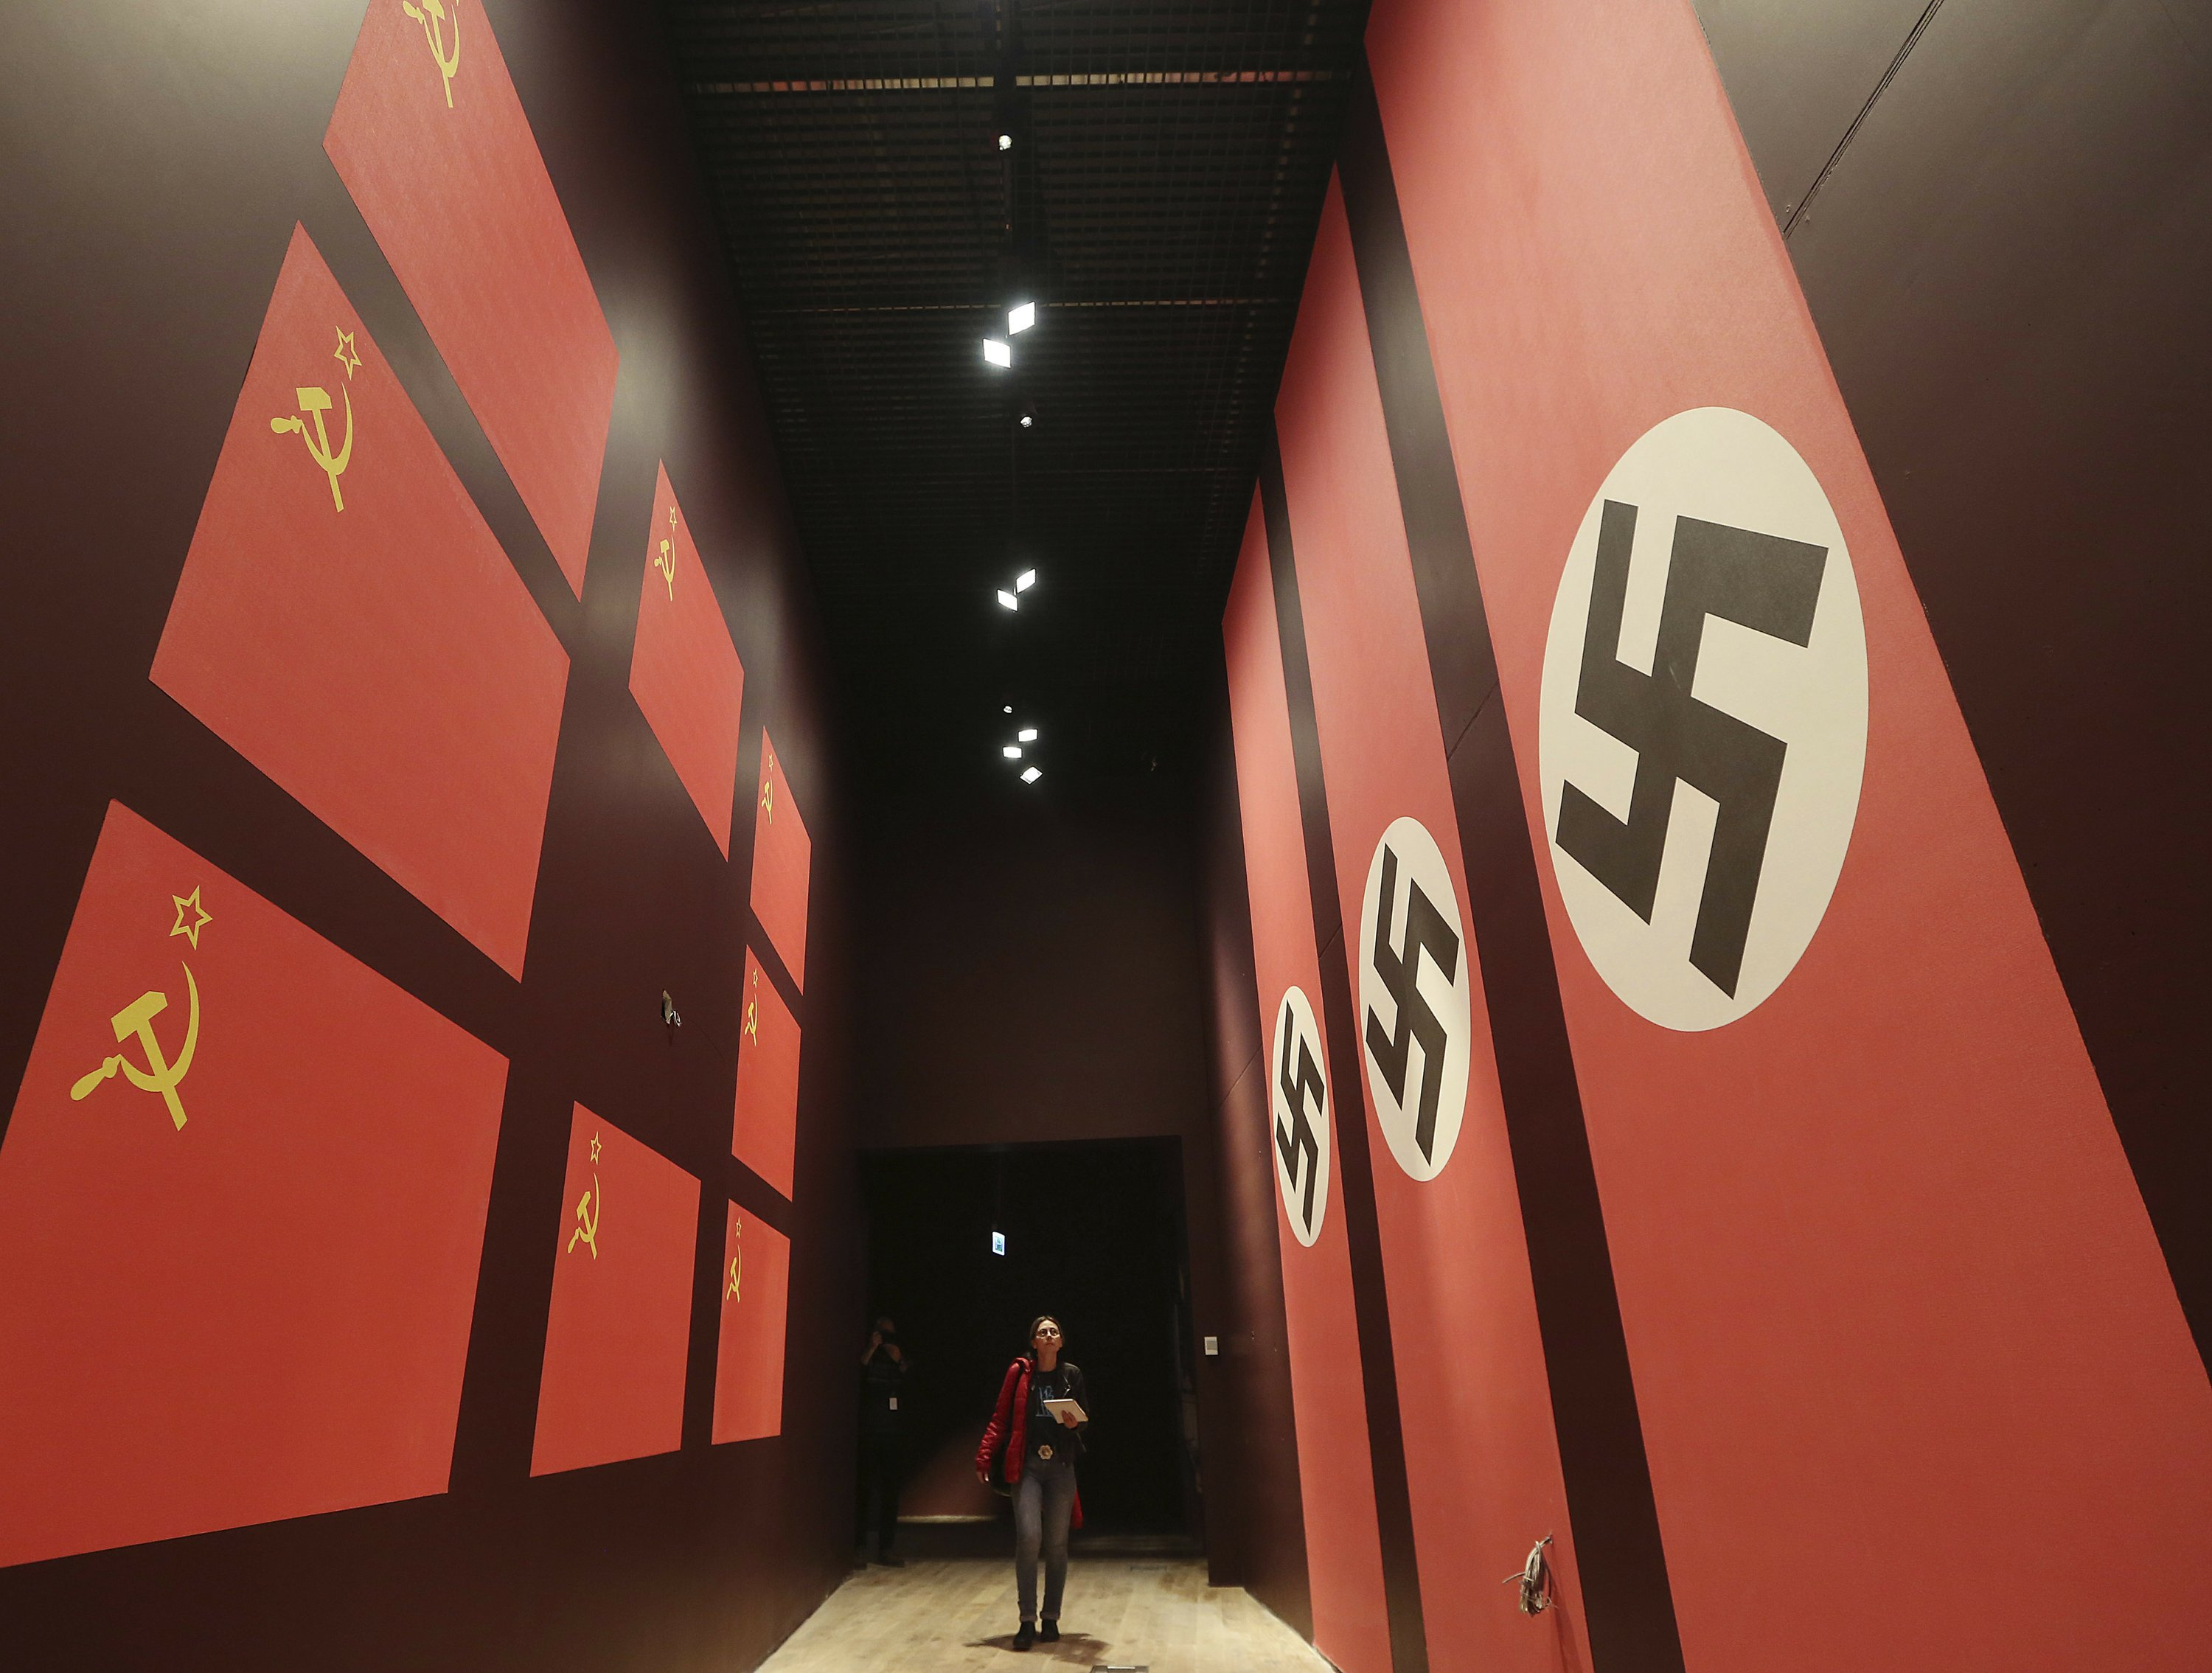 Fate of Polish WWII museum unclear amid battle over history